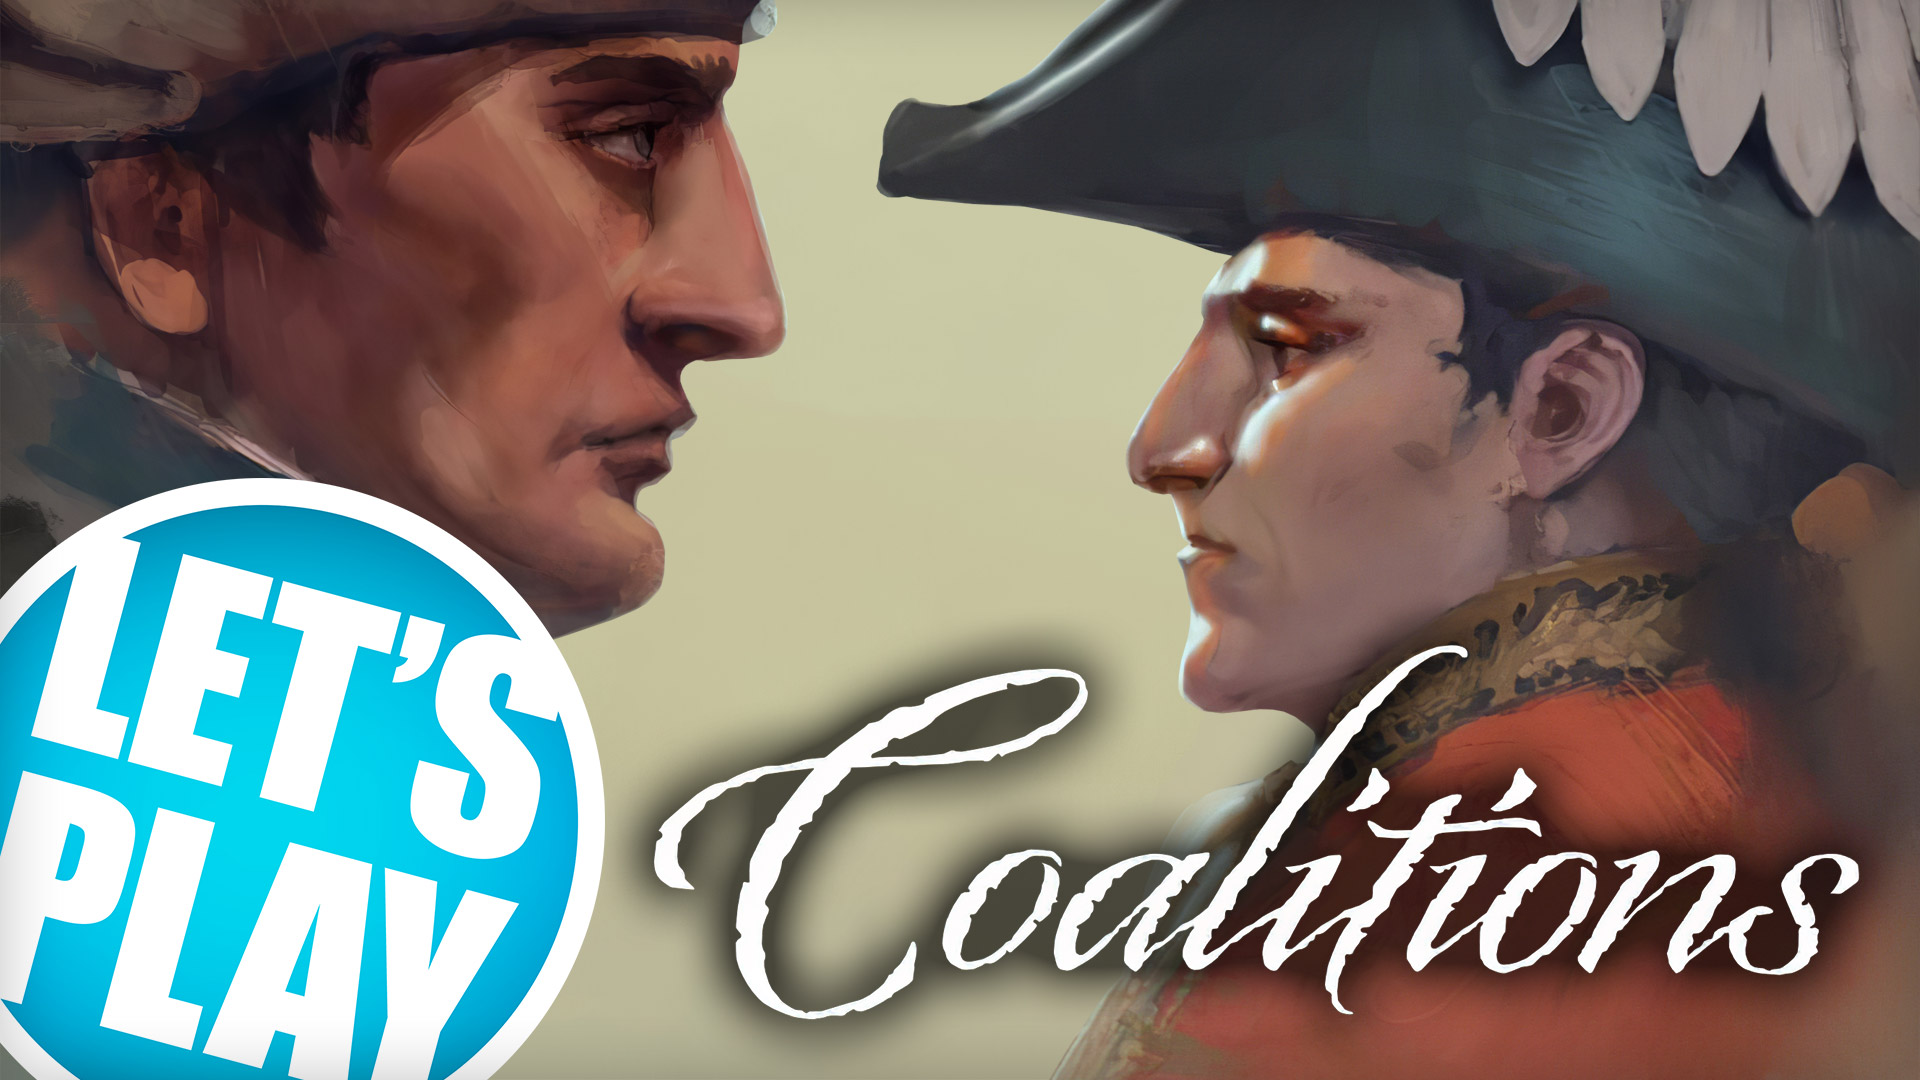 Lets-Play---Phalanx---Coalitions-coverimage